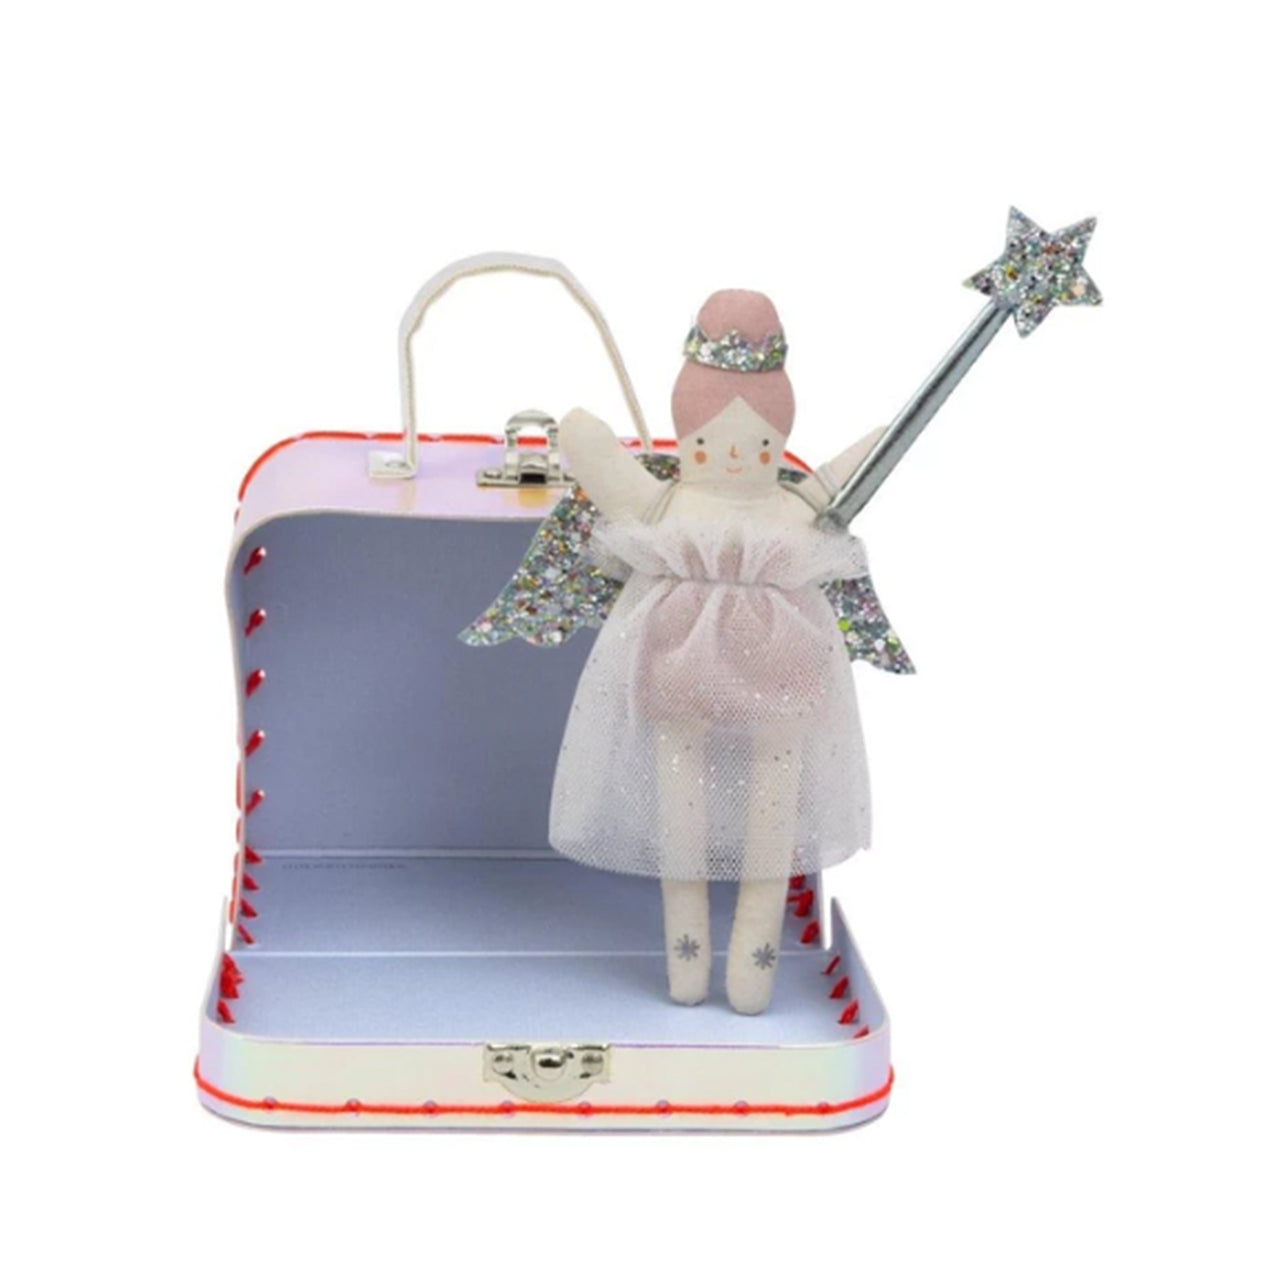 Mini Evie Suitcase Doll